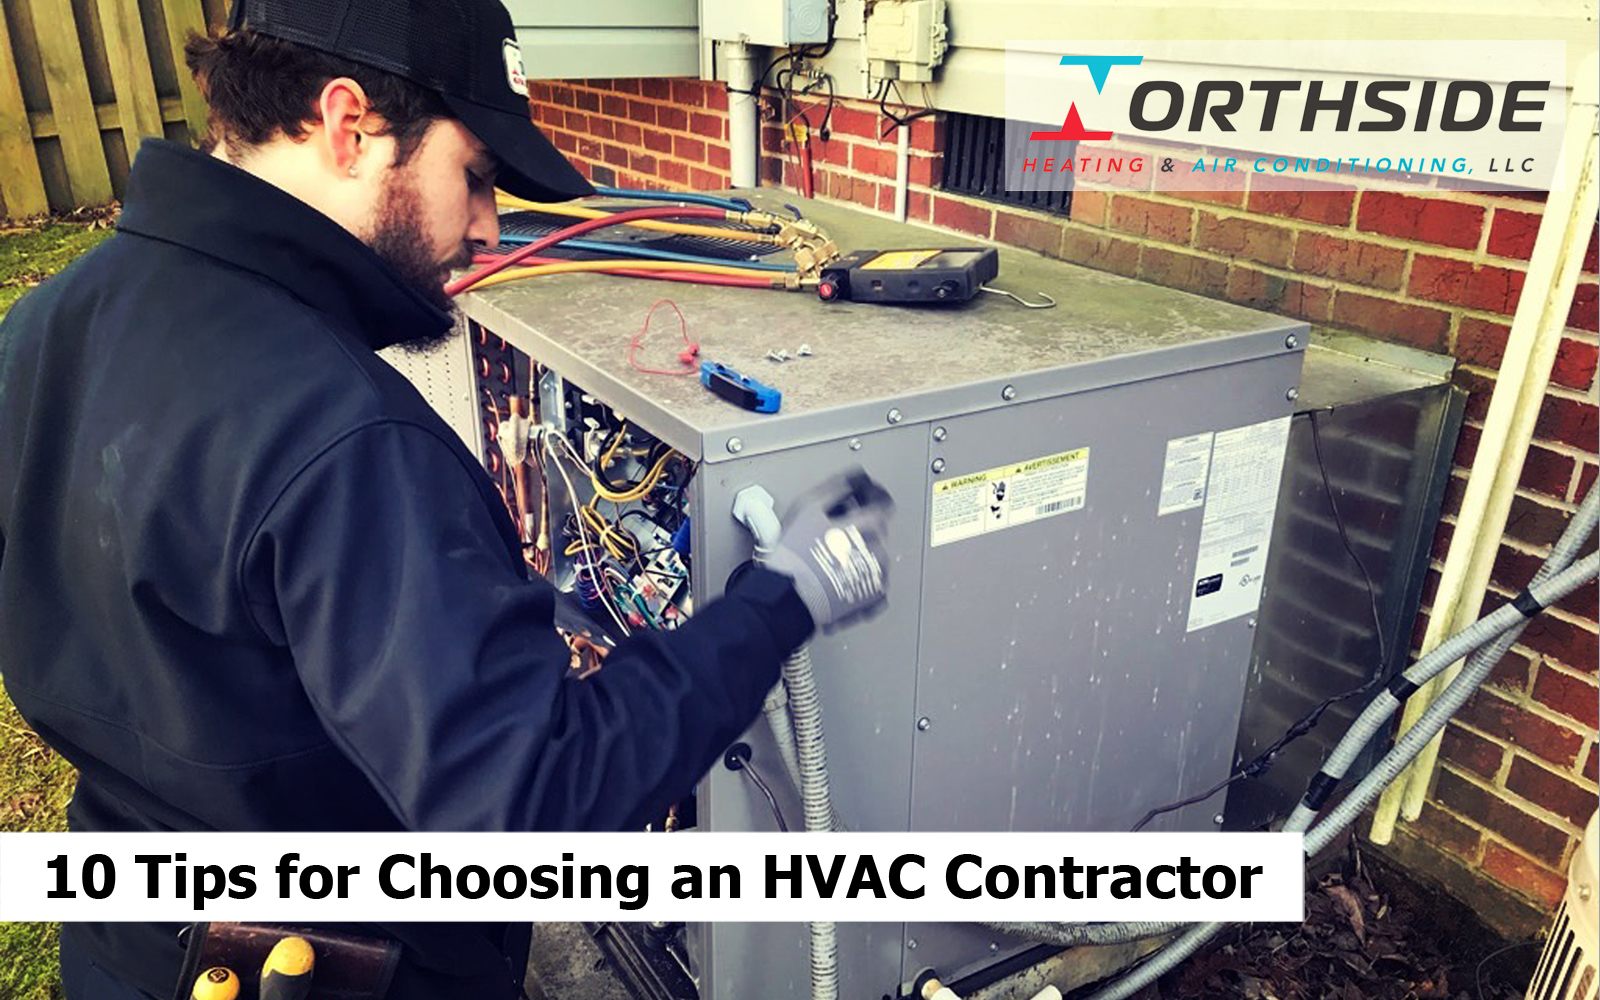 10 Tips for Choosing an HVAC Contractor